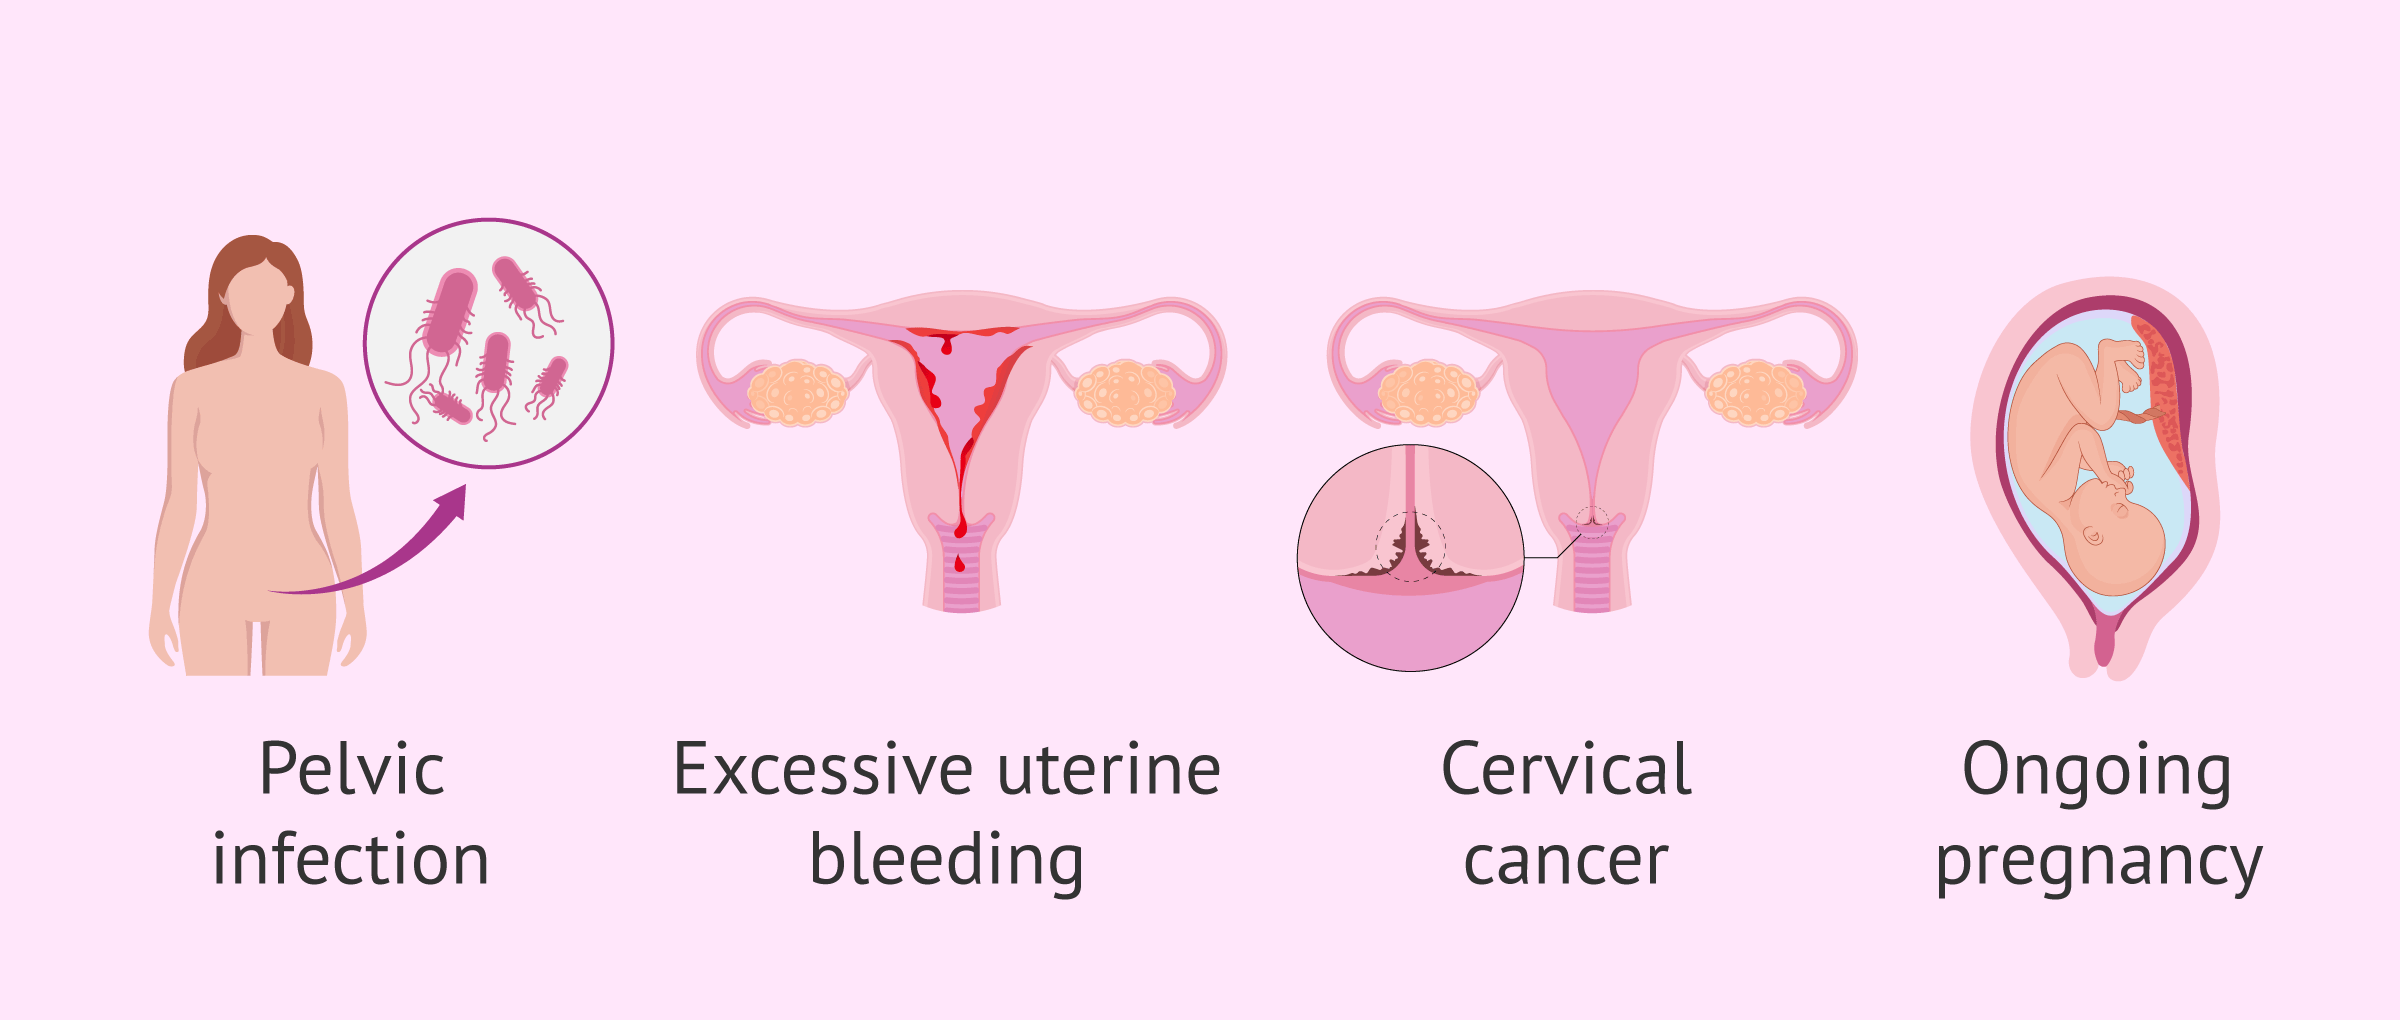 Contraindication of hysteroscopy